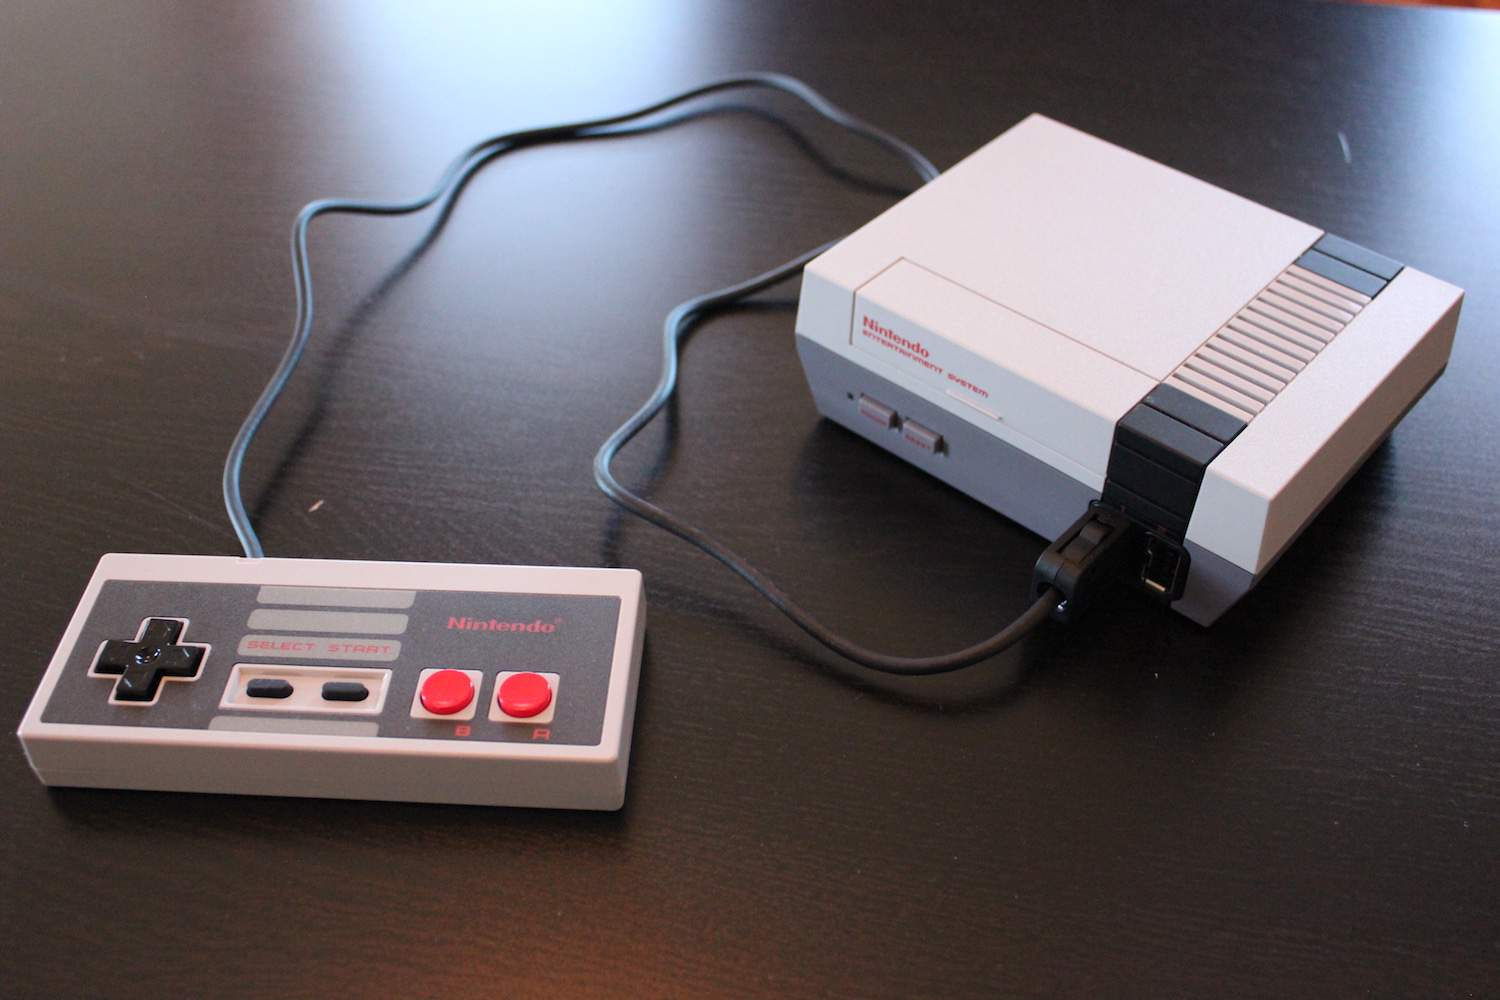 NES Mini mais popular do que a Wii U